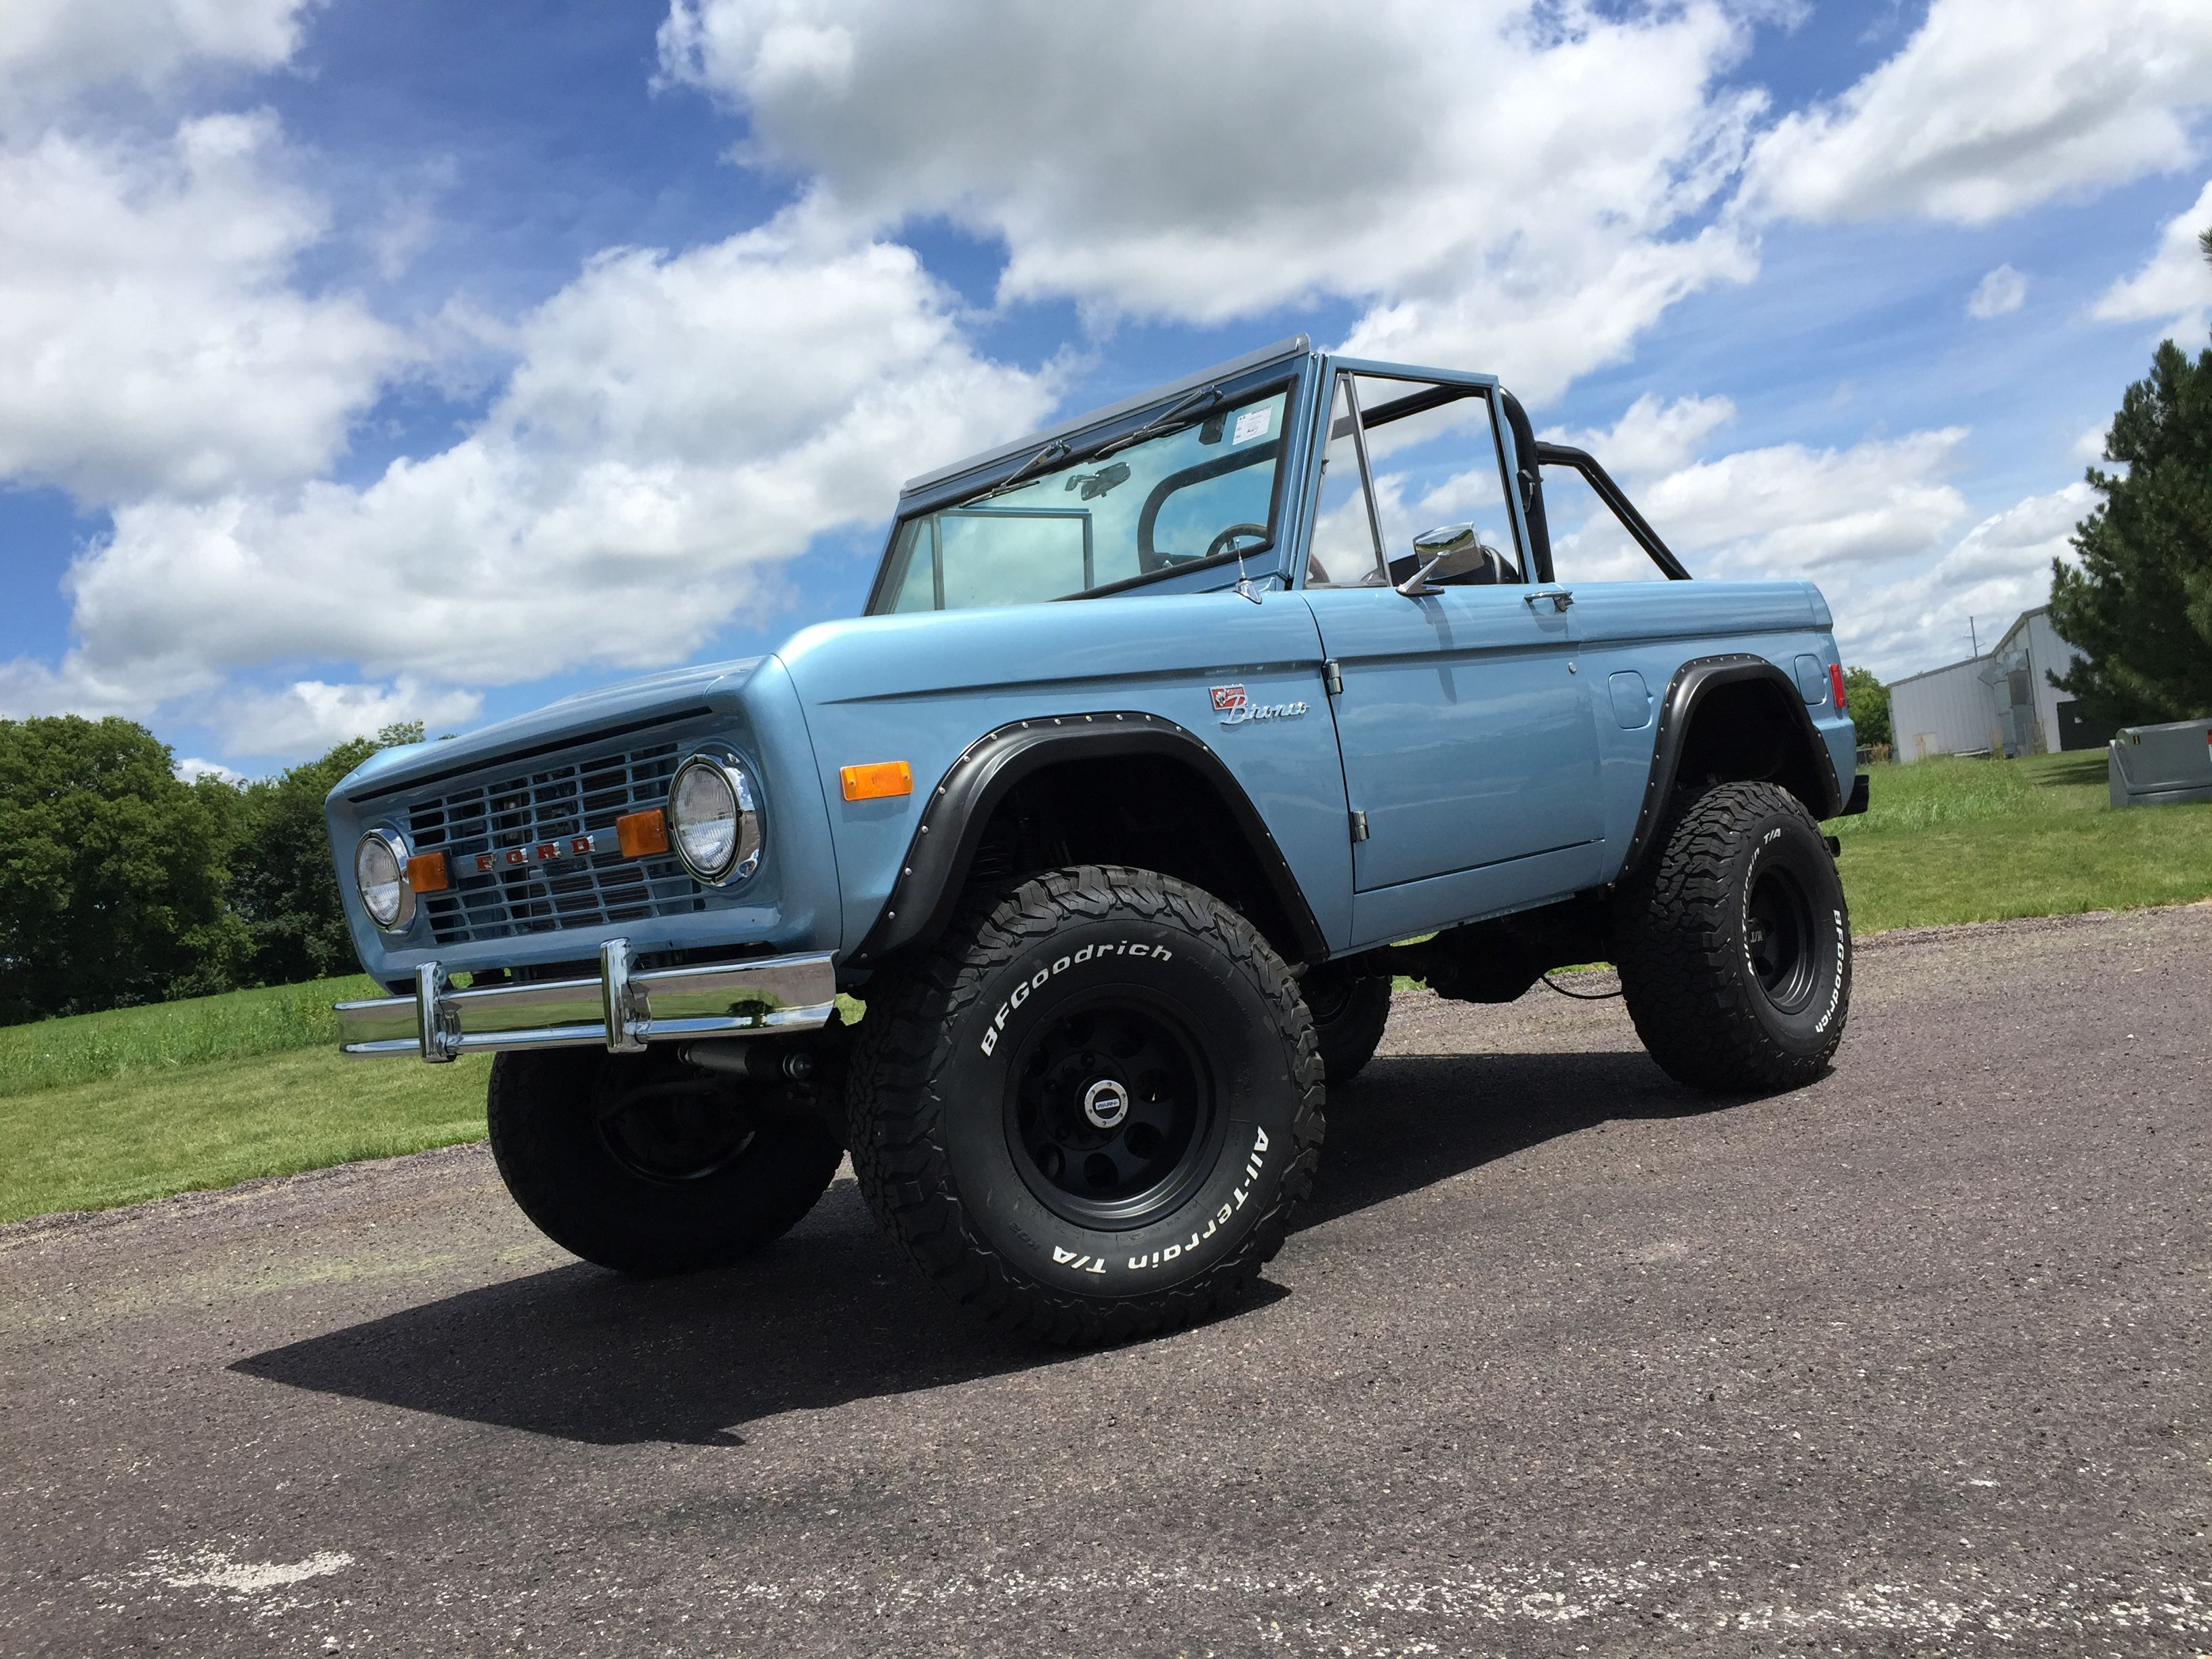 1977 ford bronco brittany blue kick ass cars trucks 1977 ford bronco brittany blue frame off restoration blueprint engines 347 stroker automatic transmission power steering power disc brakes malvernweather Images